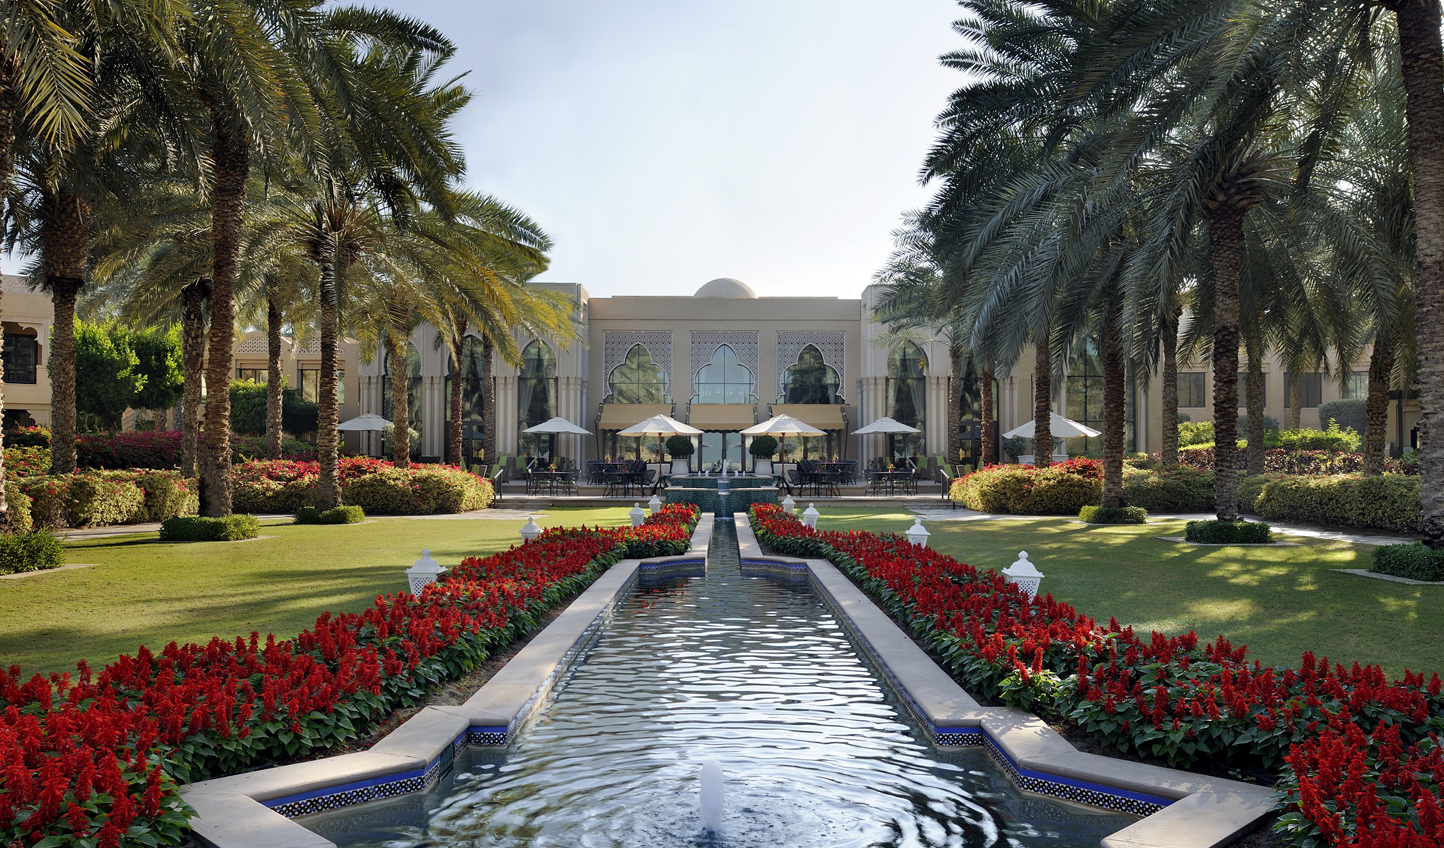 Stroll through the beautiful manicured gardens